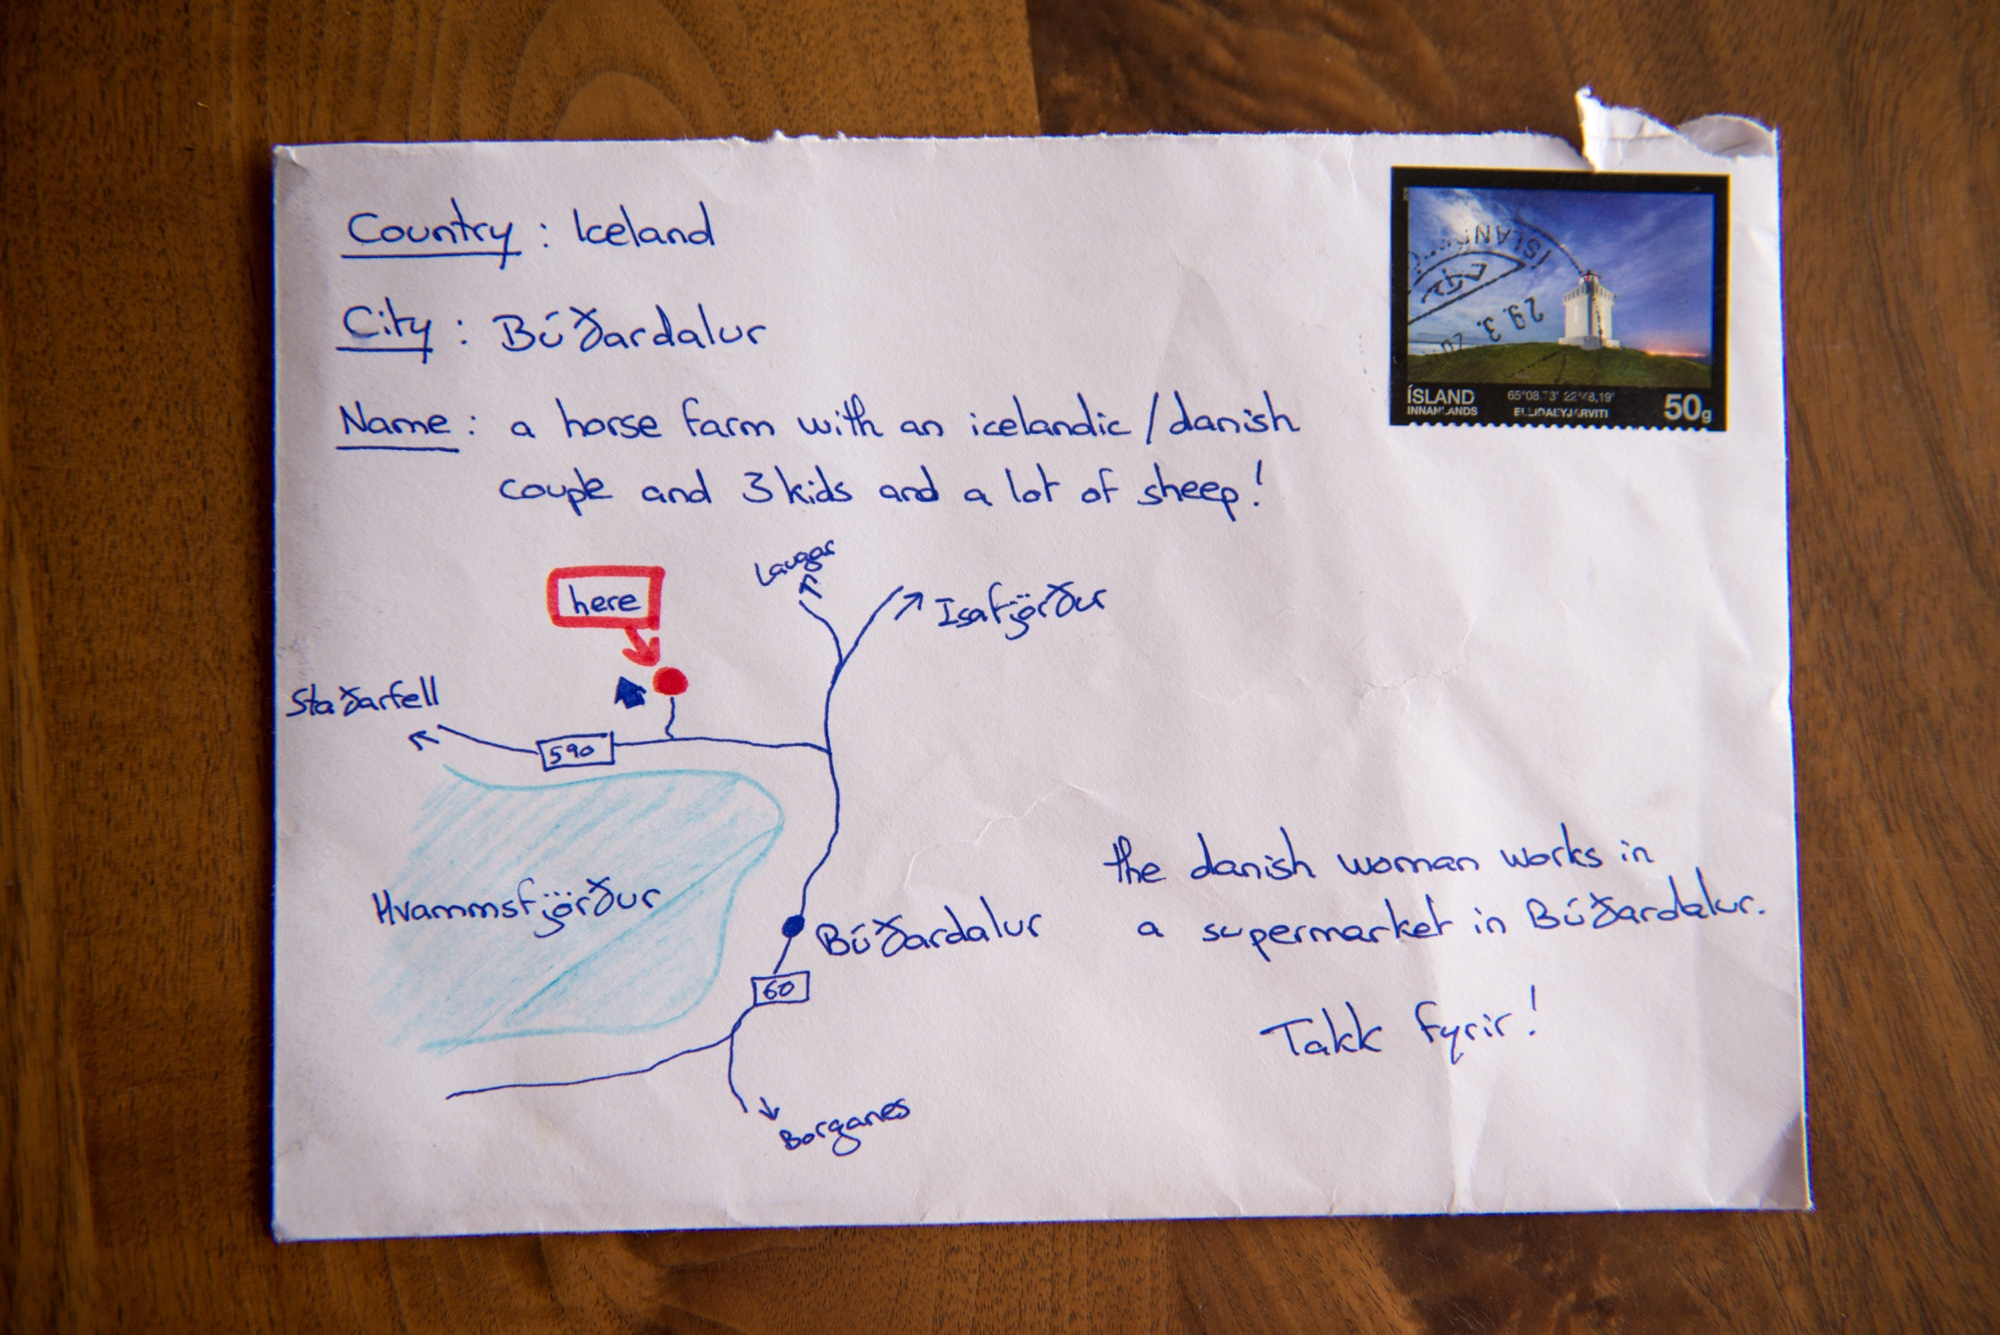 letter sent to iceland farm with hand drawn map instead of address gets there anyway